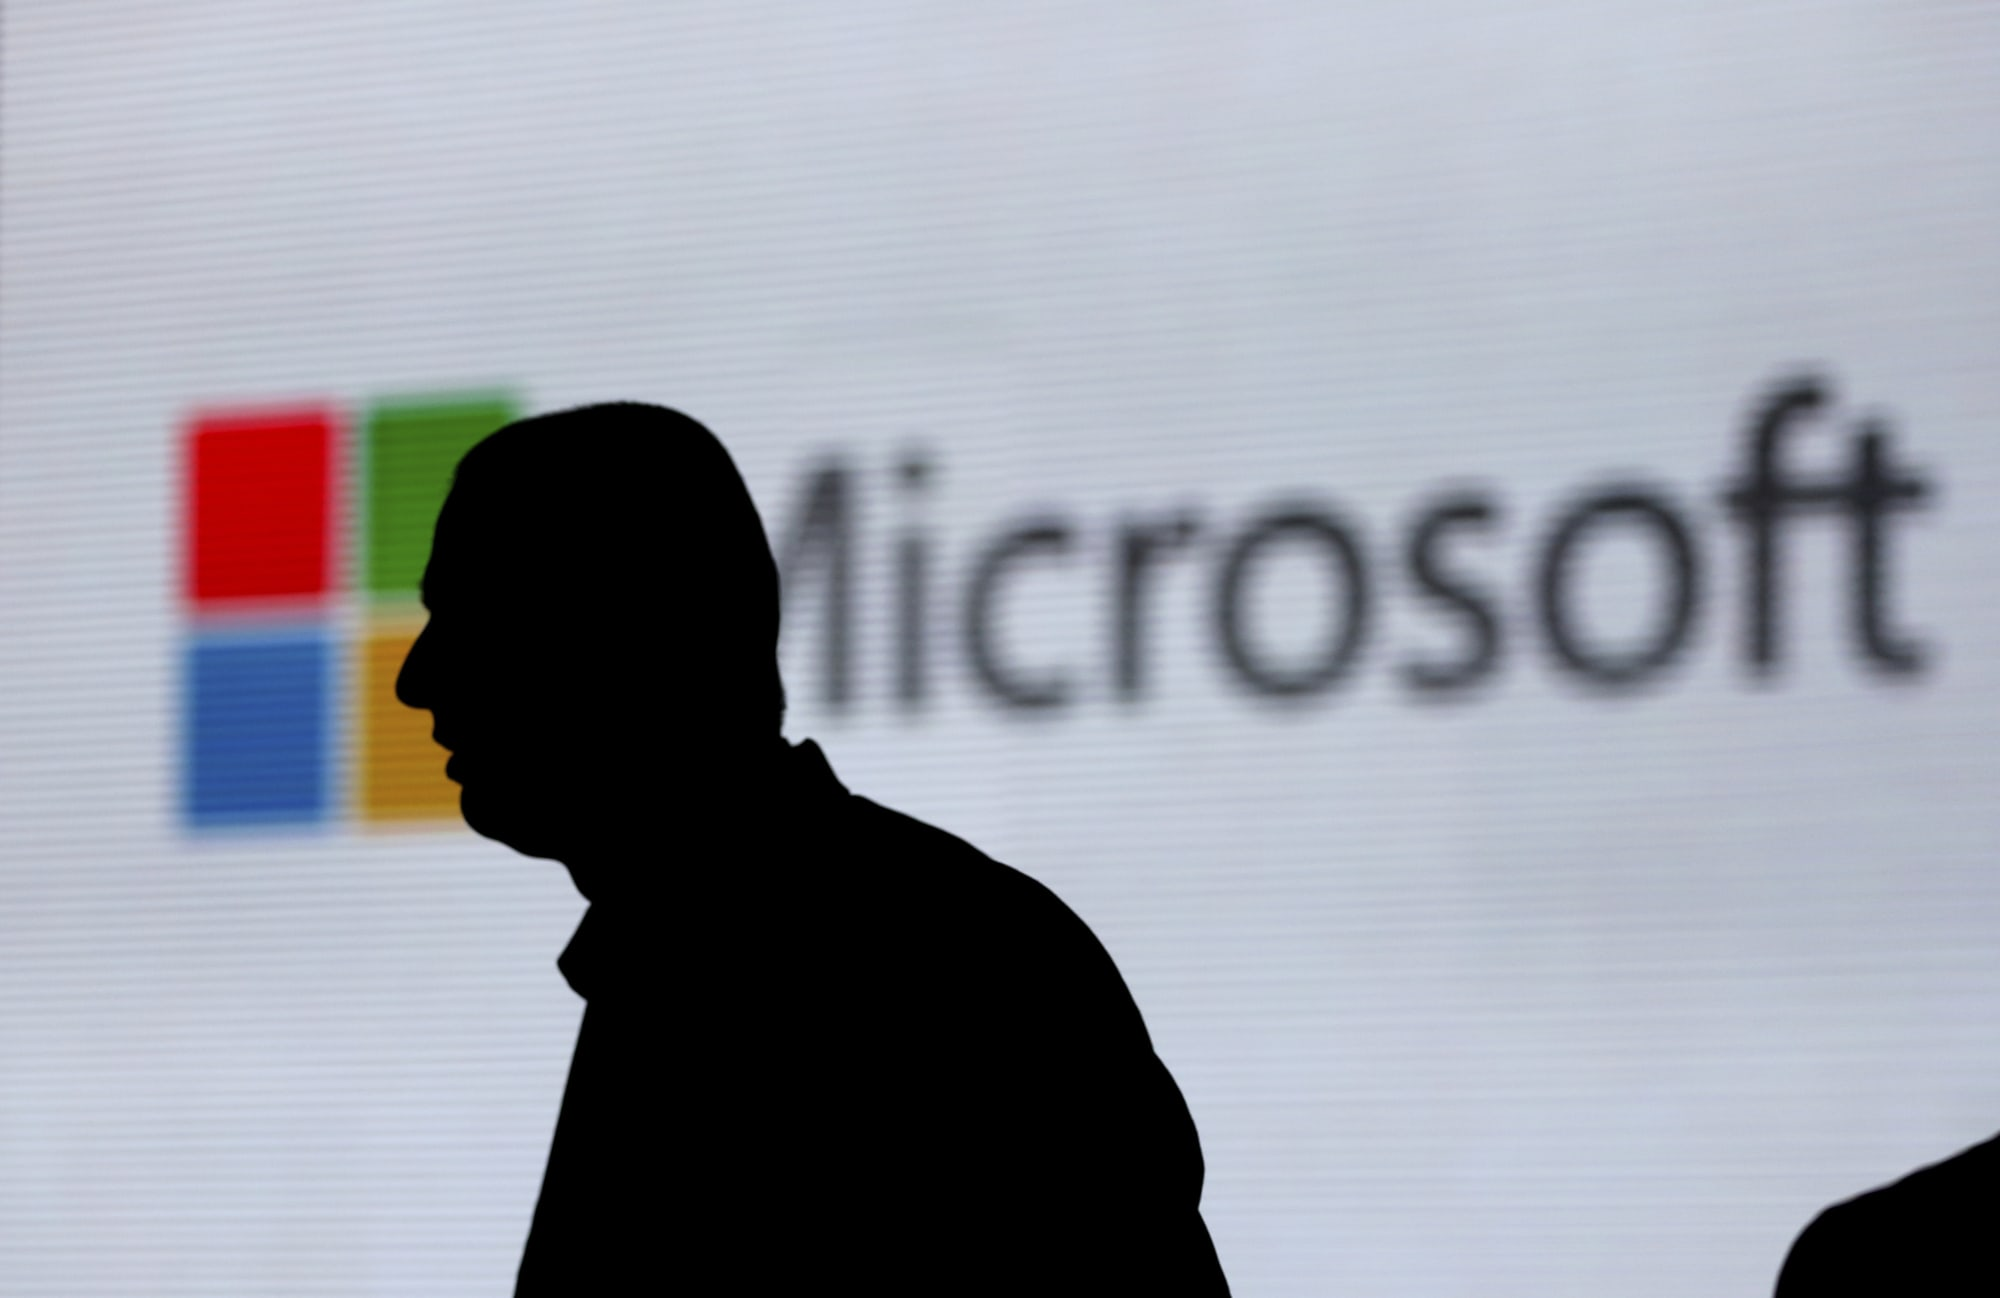 """Microsoft employees protest climate change """"complicity"""" in open letter"""